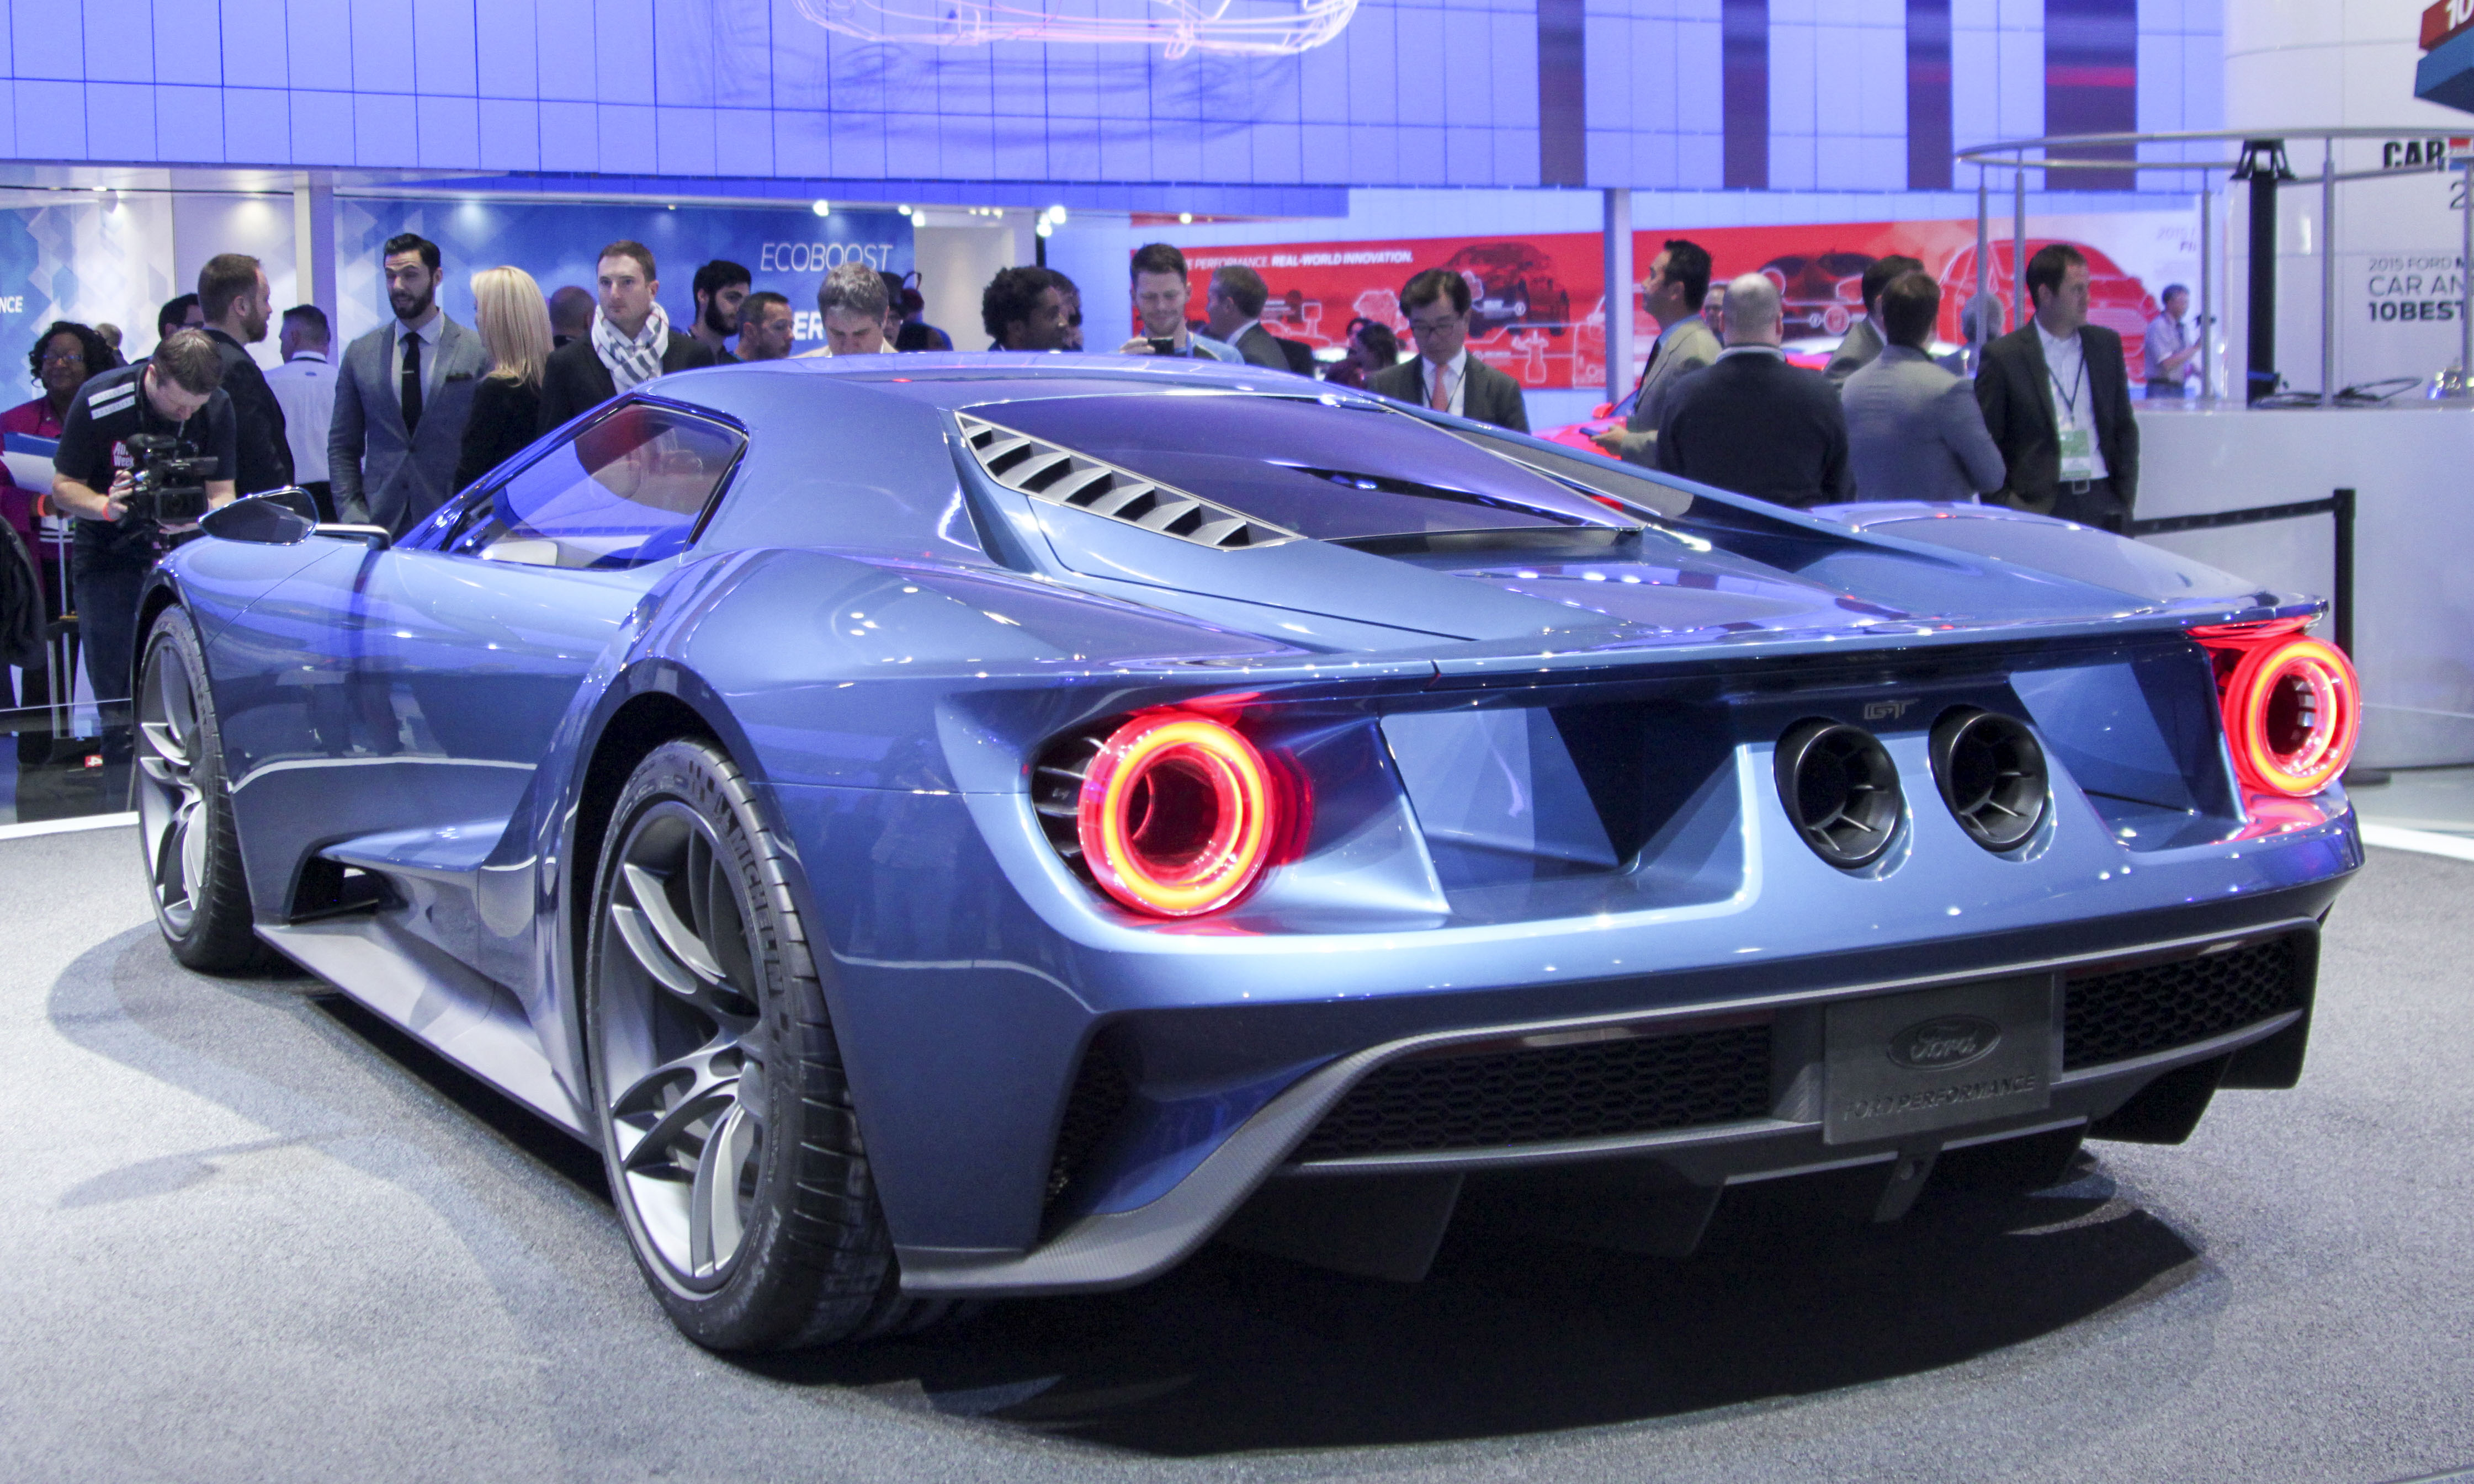 Ford GT (c) Perry Stern